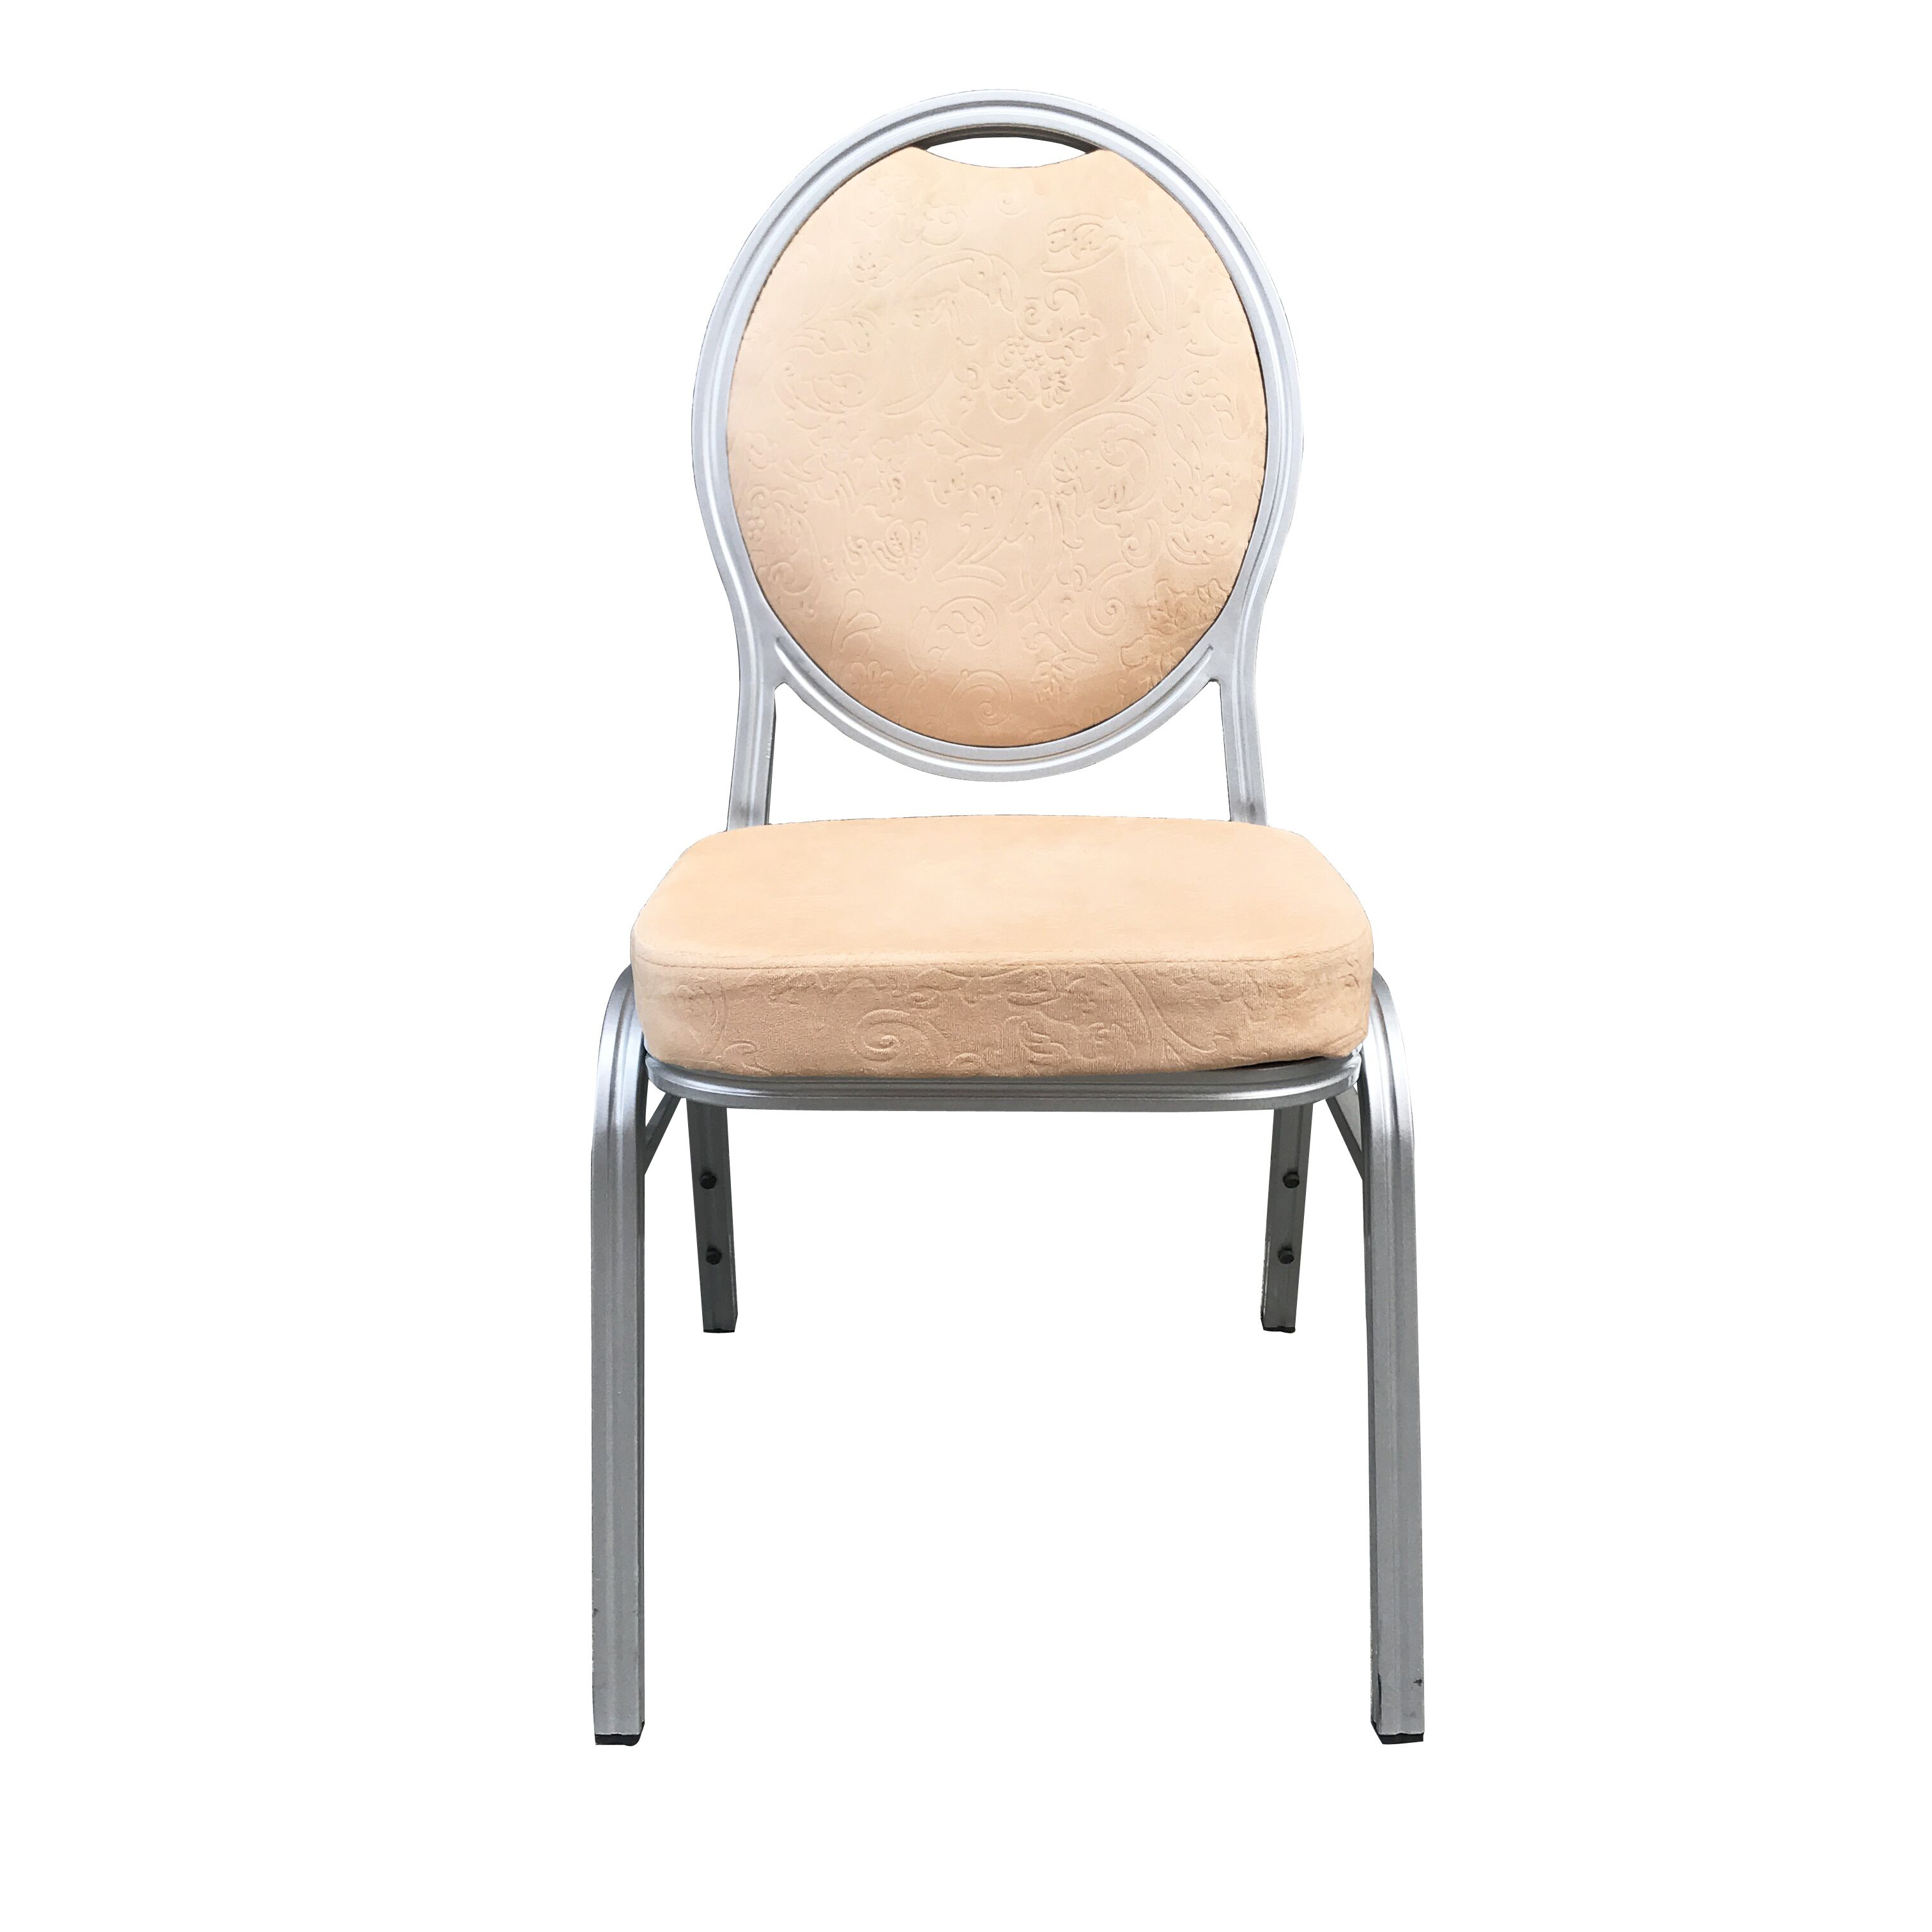 Used Hotel Banquet Chairs For Sale SF-L19 Featured Image